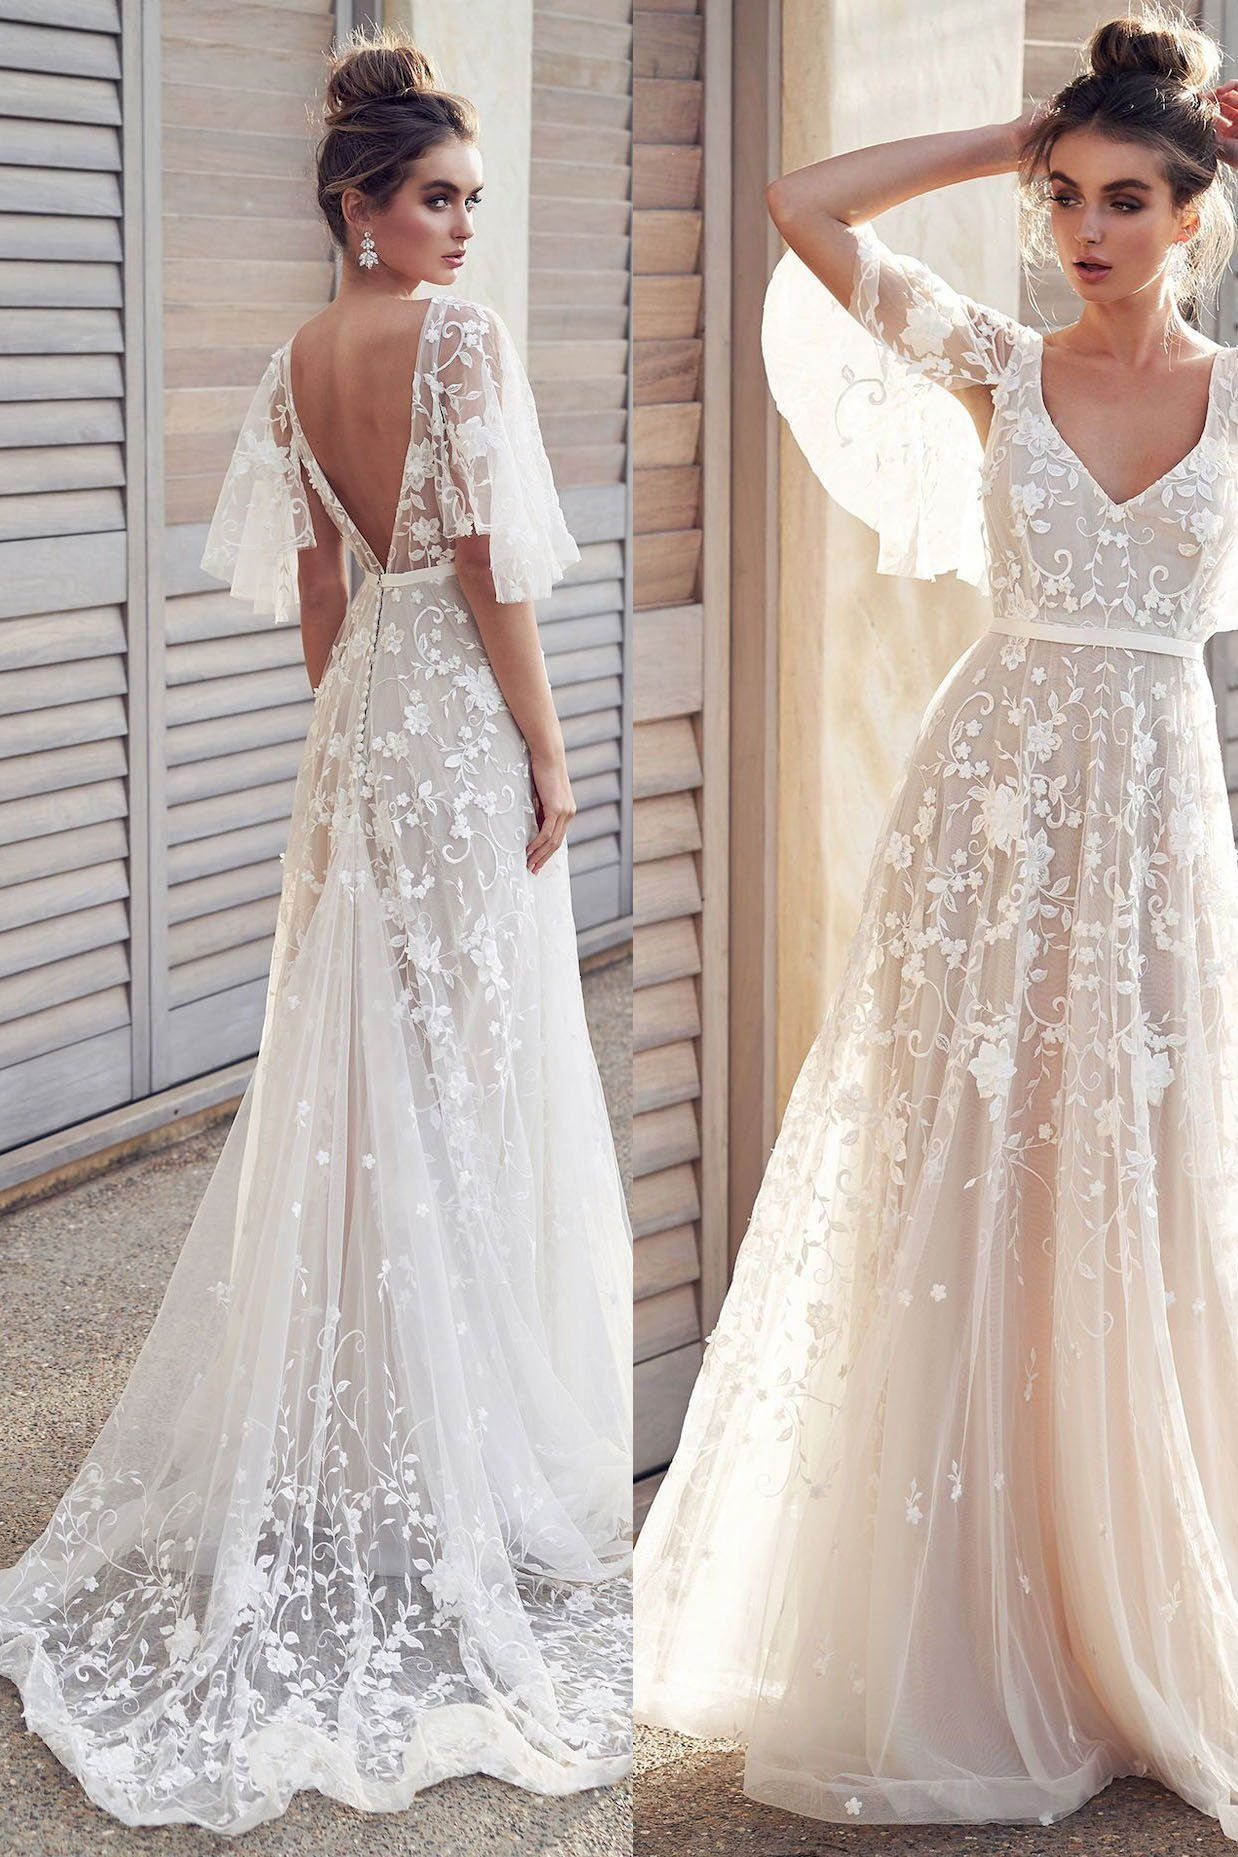 Ivory V Neck Beach Wedding Dresses with Lace Appliques Romantic Backless Bridal Dresses HOM11903